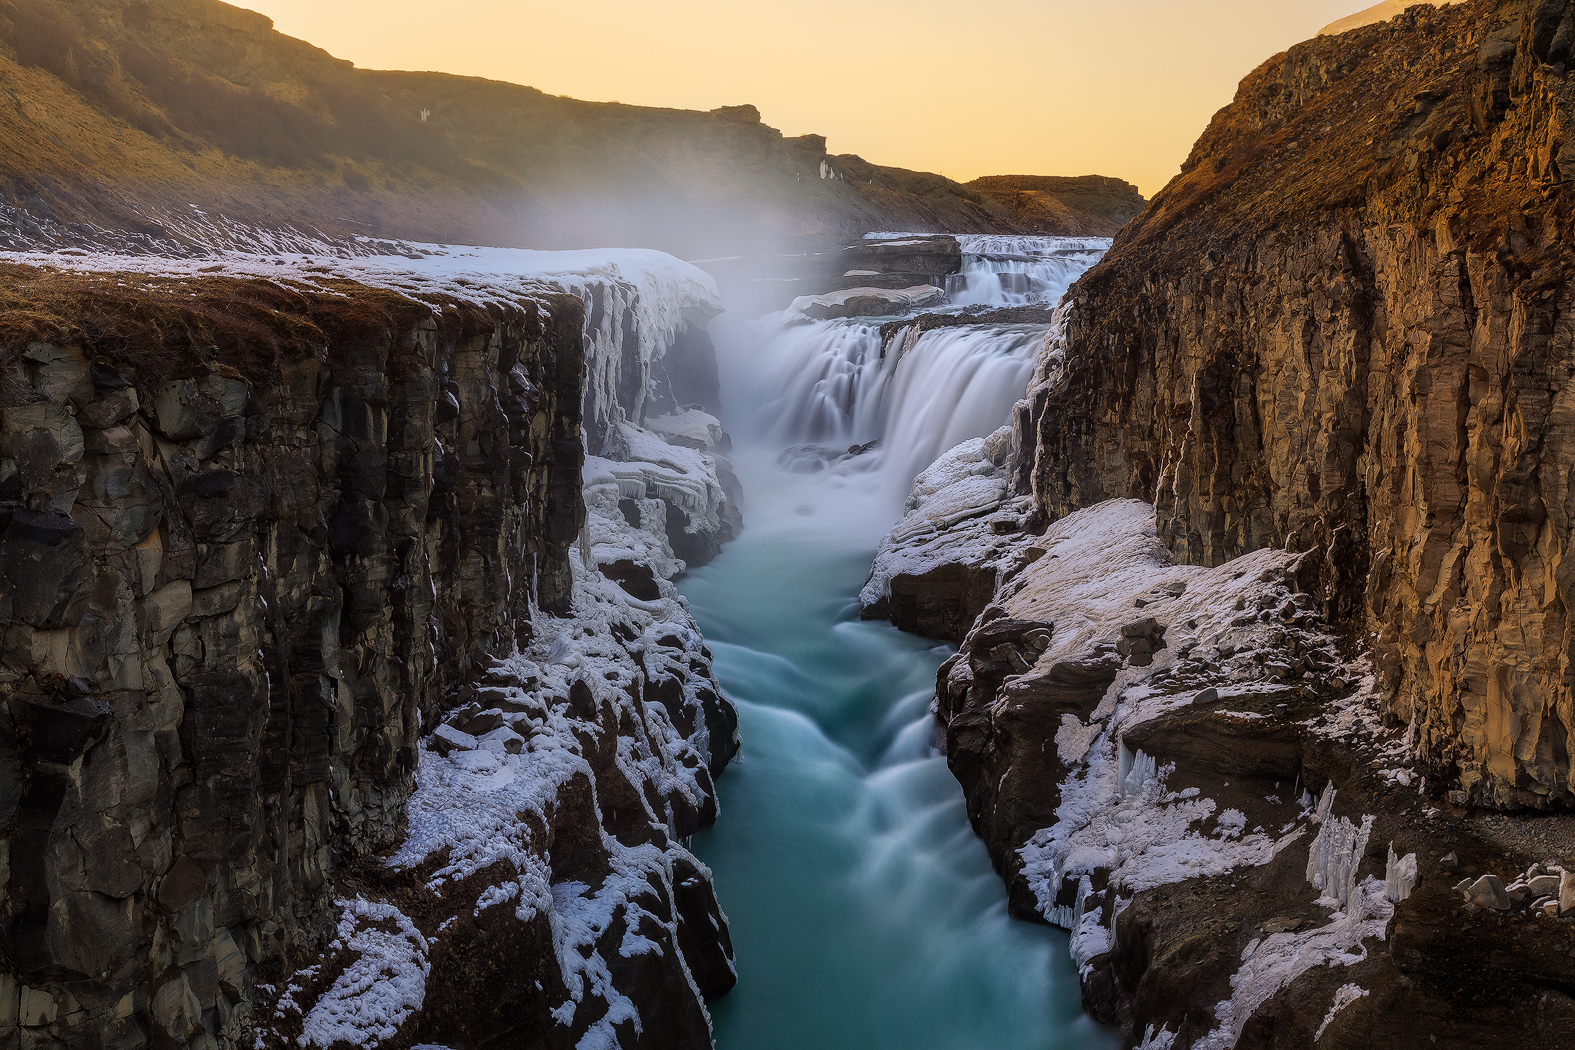 Gullfoss is a powerful waterfall and makes up one third of the Golden Circle sightseeing route.